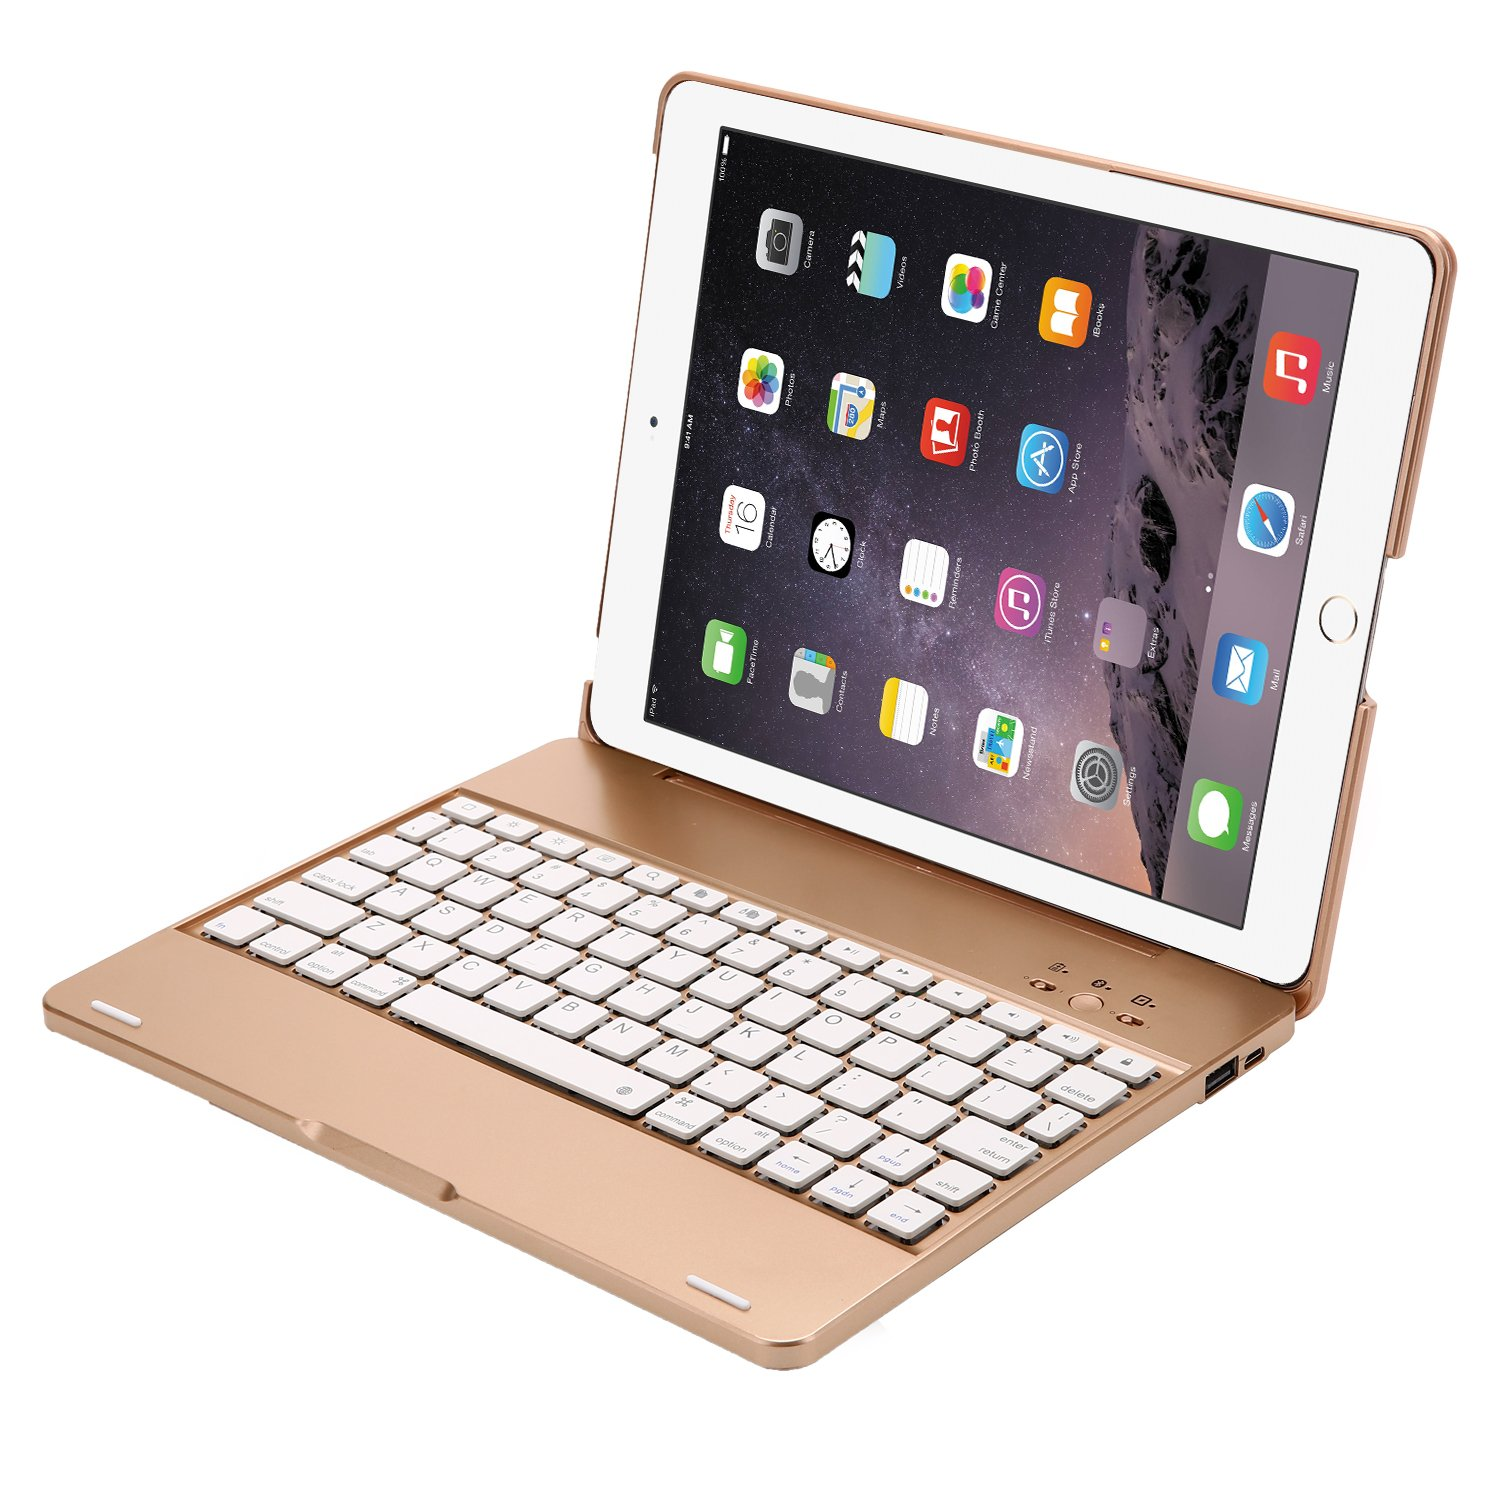 YOUNGFUN iPad 2,3,4 Keyboard Case,Premium Portable Durable ABS Material Wireless Bluetooth Keyboard Case Cover with Built-in Rechargeable 2800mAh Powerbank for Apple iPad 2,3,4 - Gold